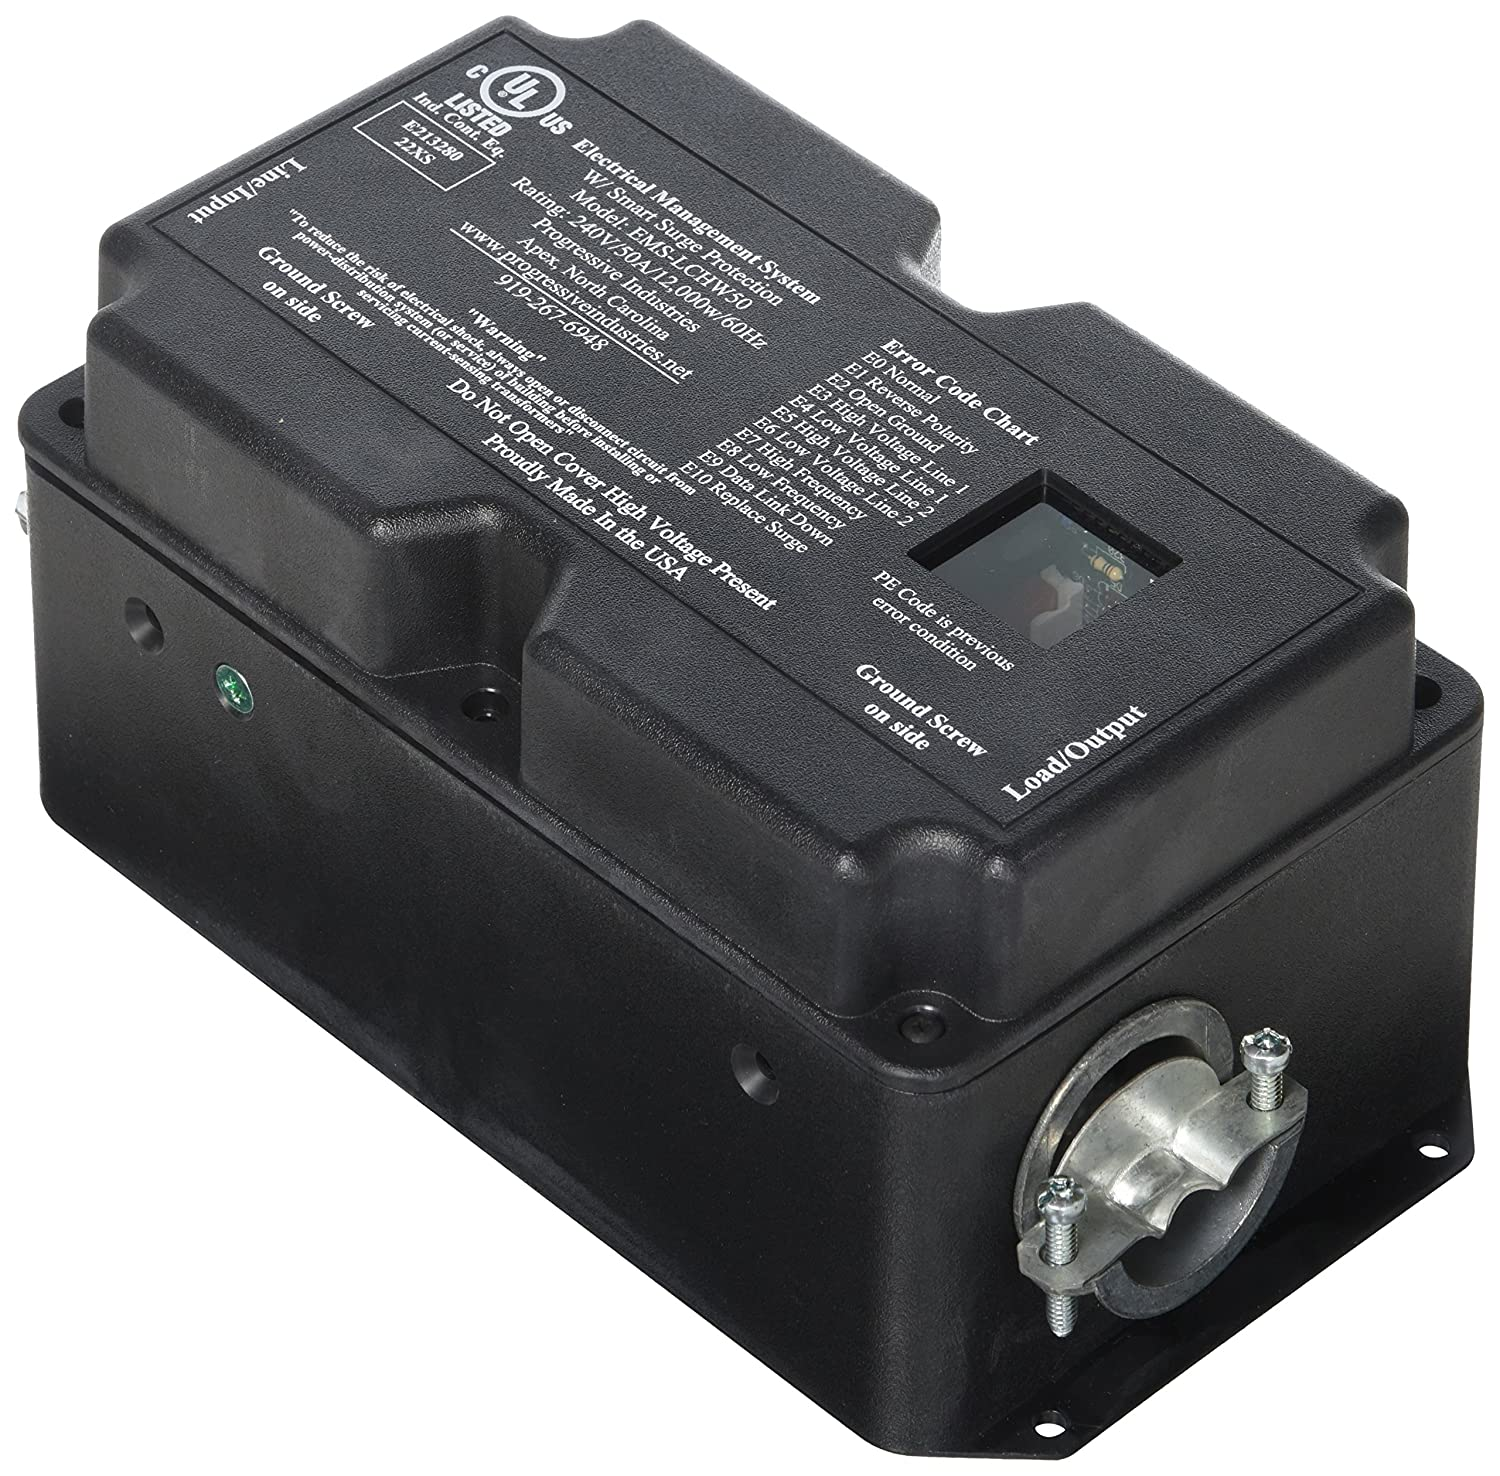 PROGRESSIVE INDUSTRIES SSP-50XL Surge Protector with Cover 50 Amp